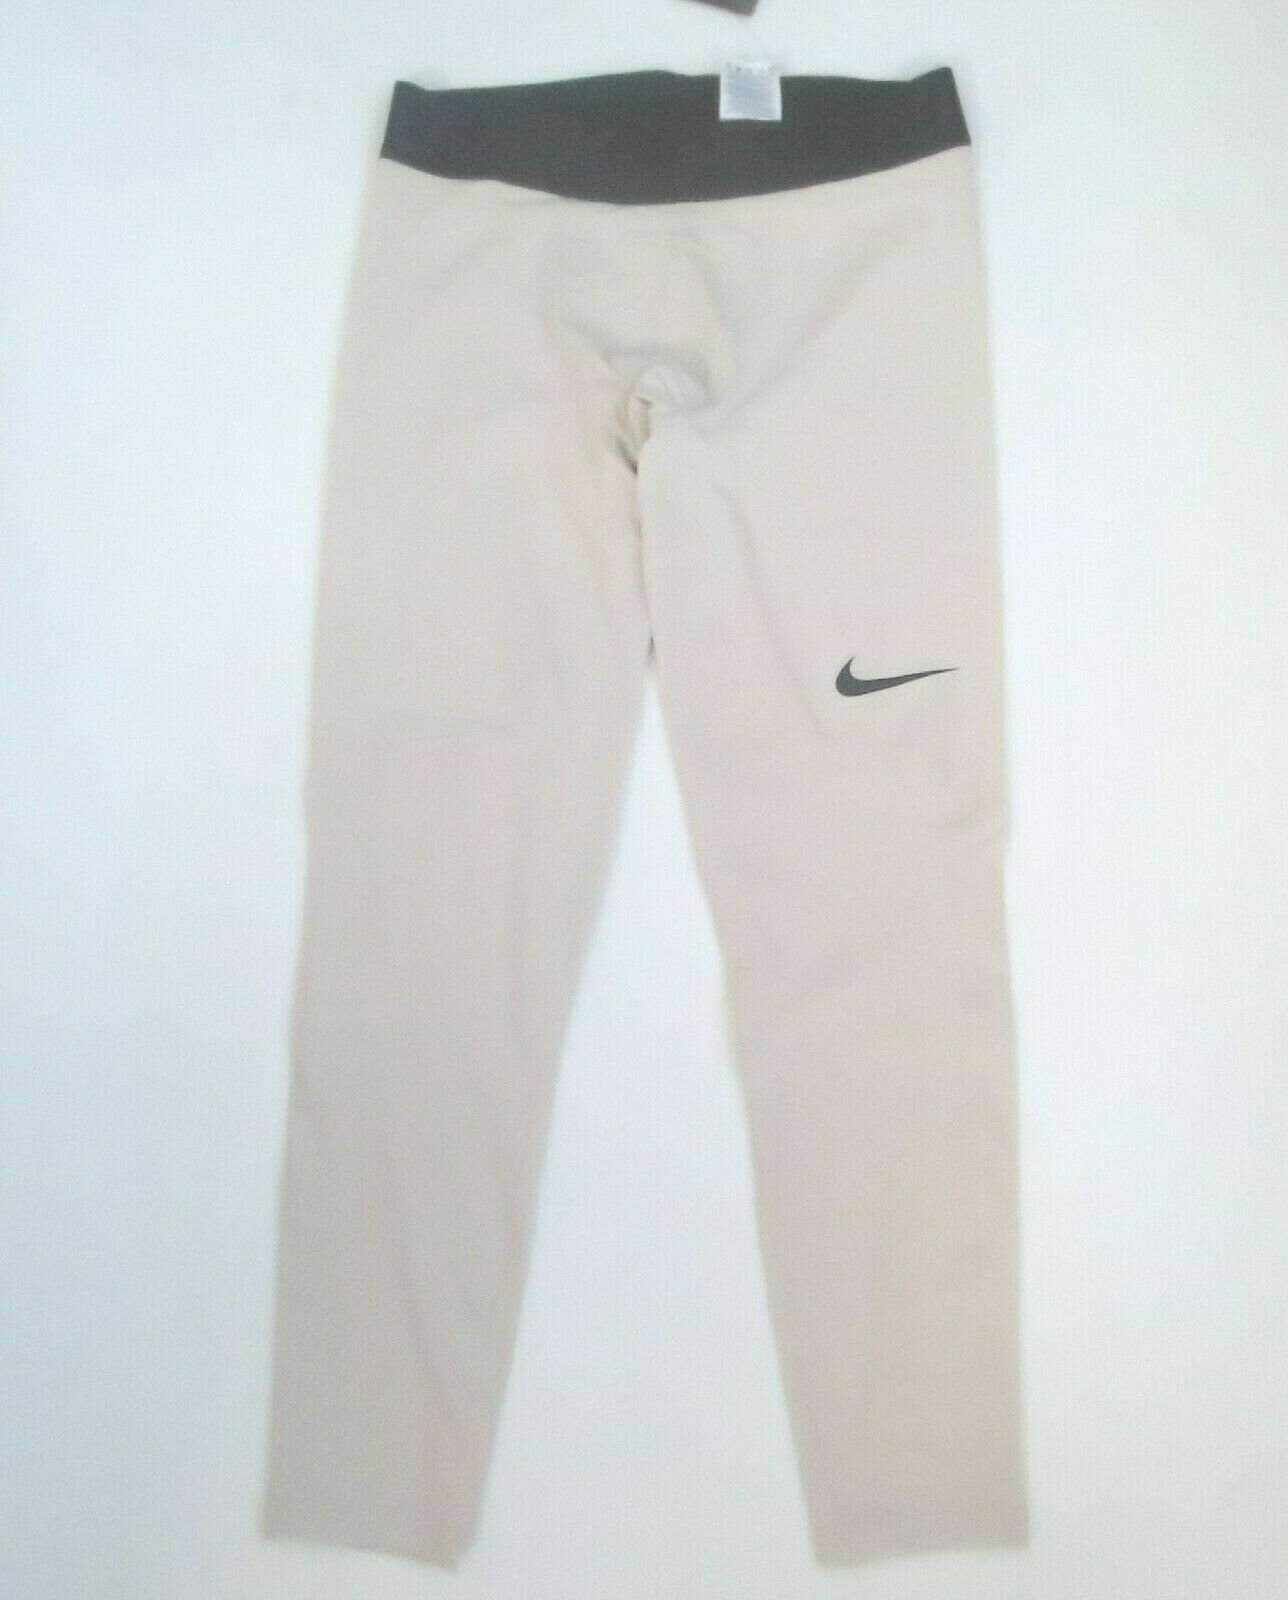 Nike Men PRO Premium Tights Pants - 928996 - Sand 008 - Size L - NWT